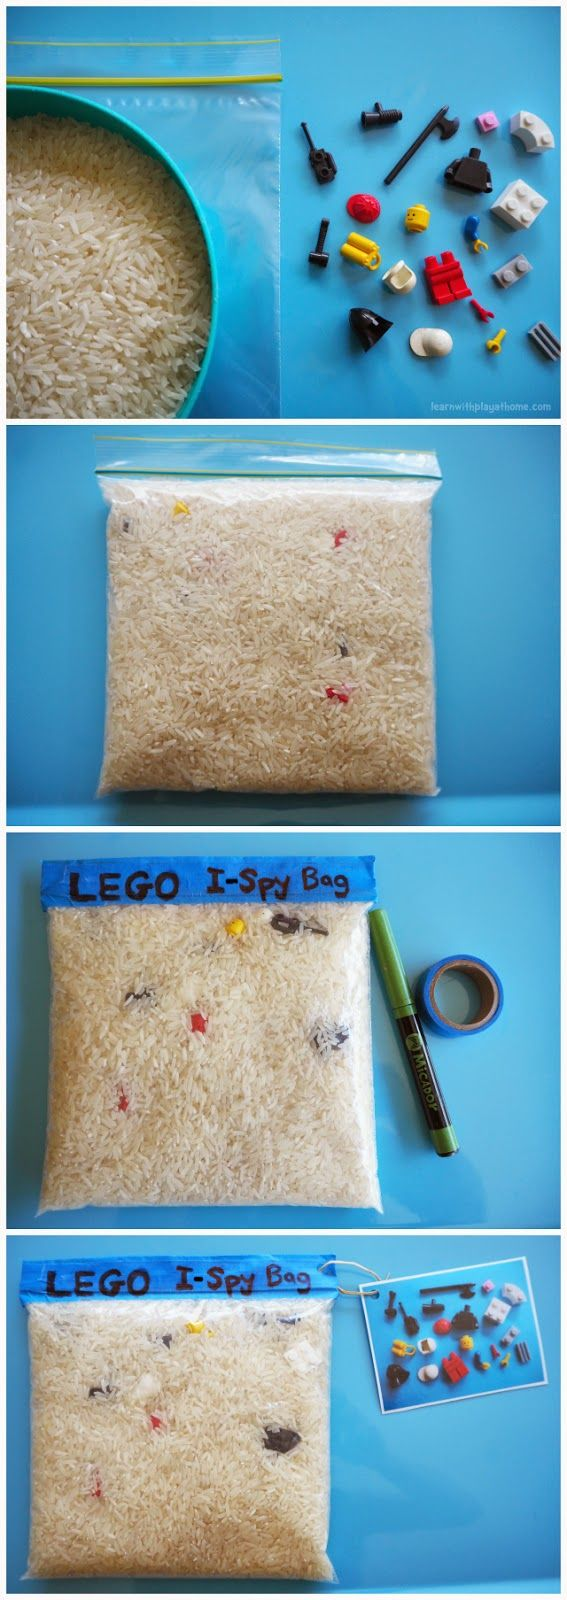 DIY LEGO I-Spy Bag plus other fun road trip activities